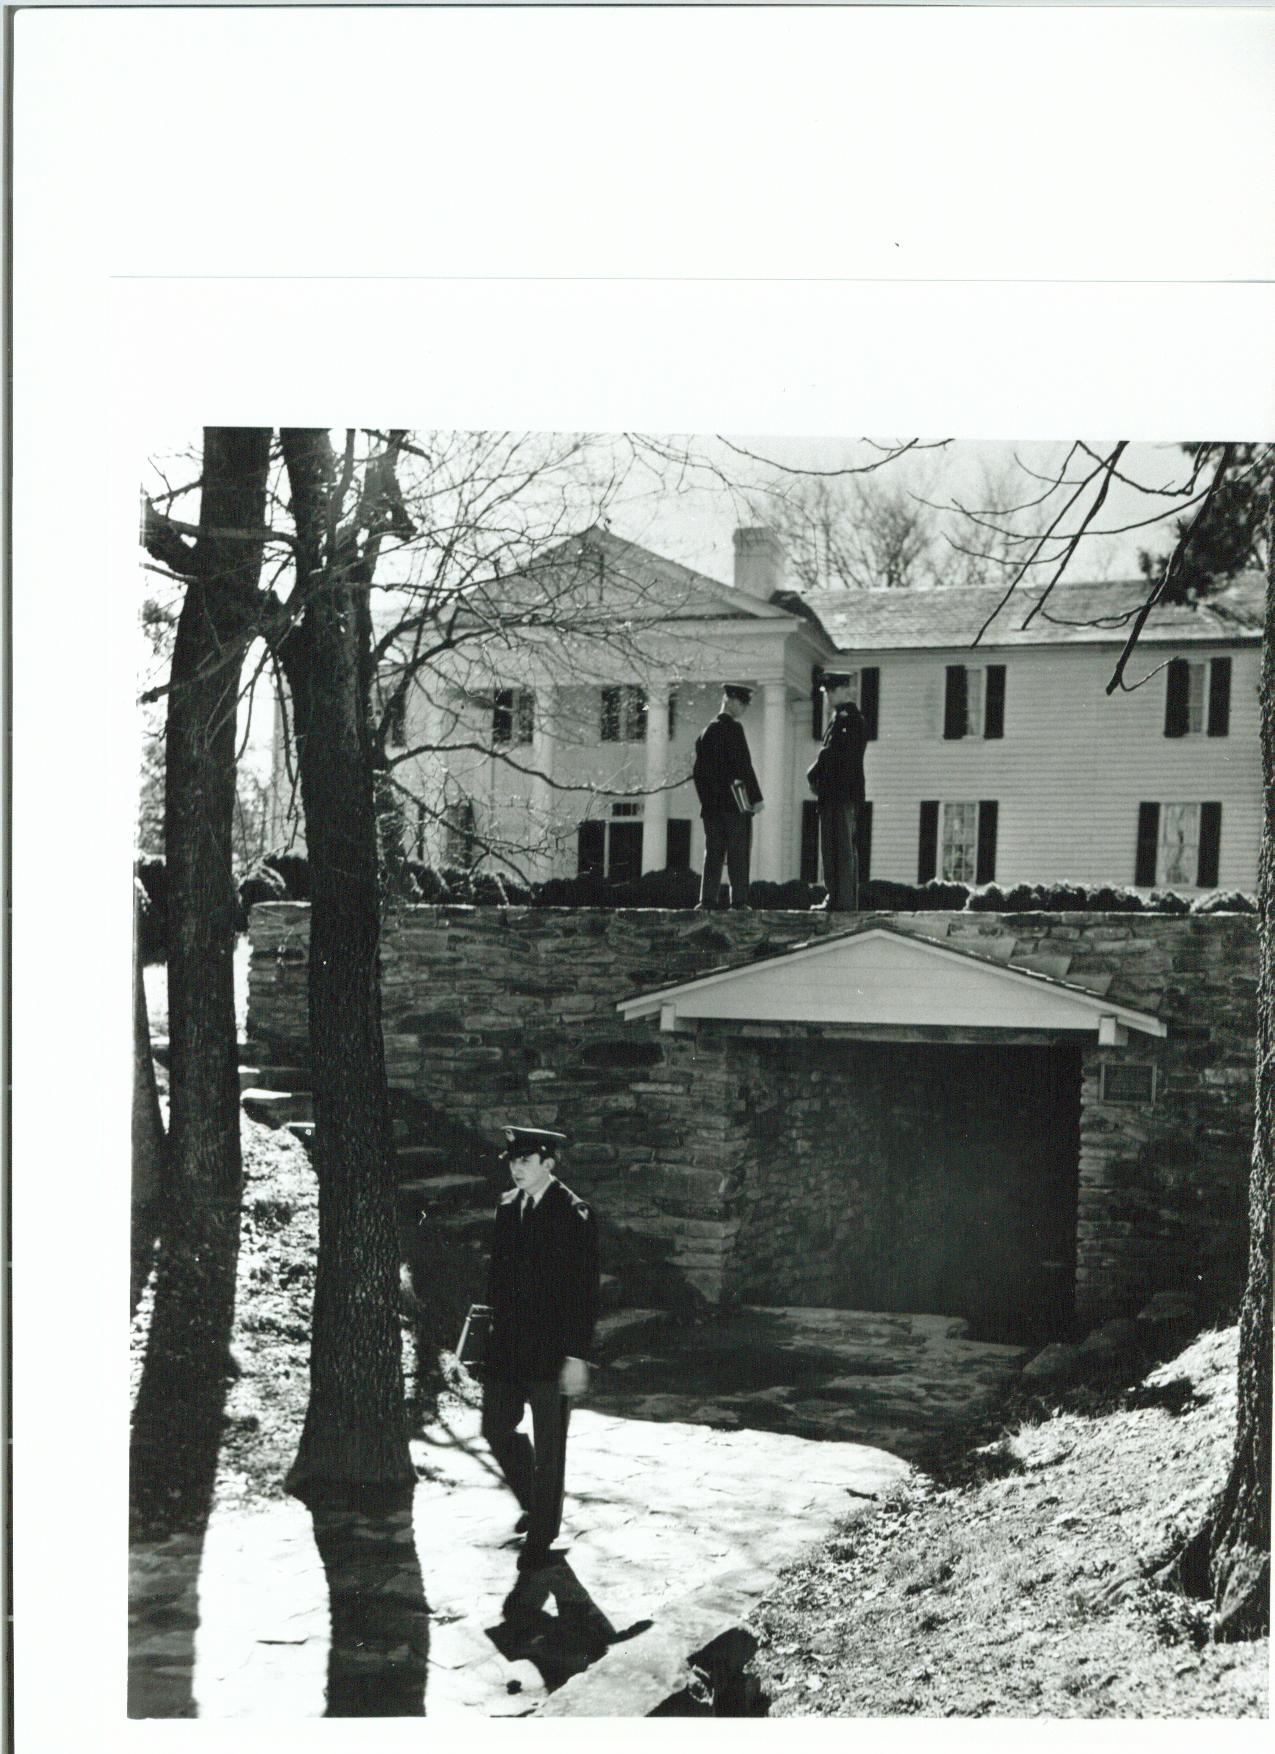 Cadets at the Spring House